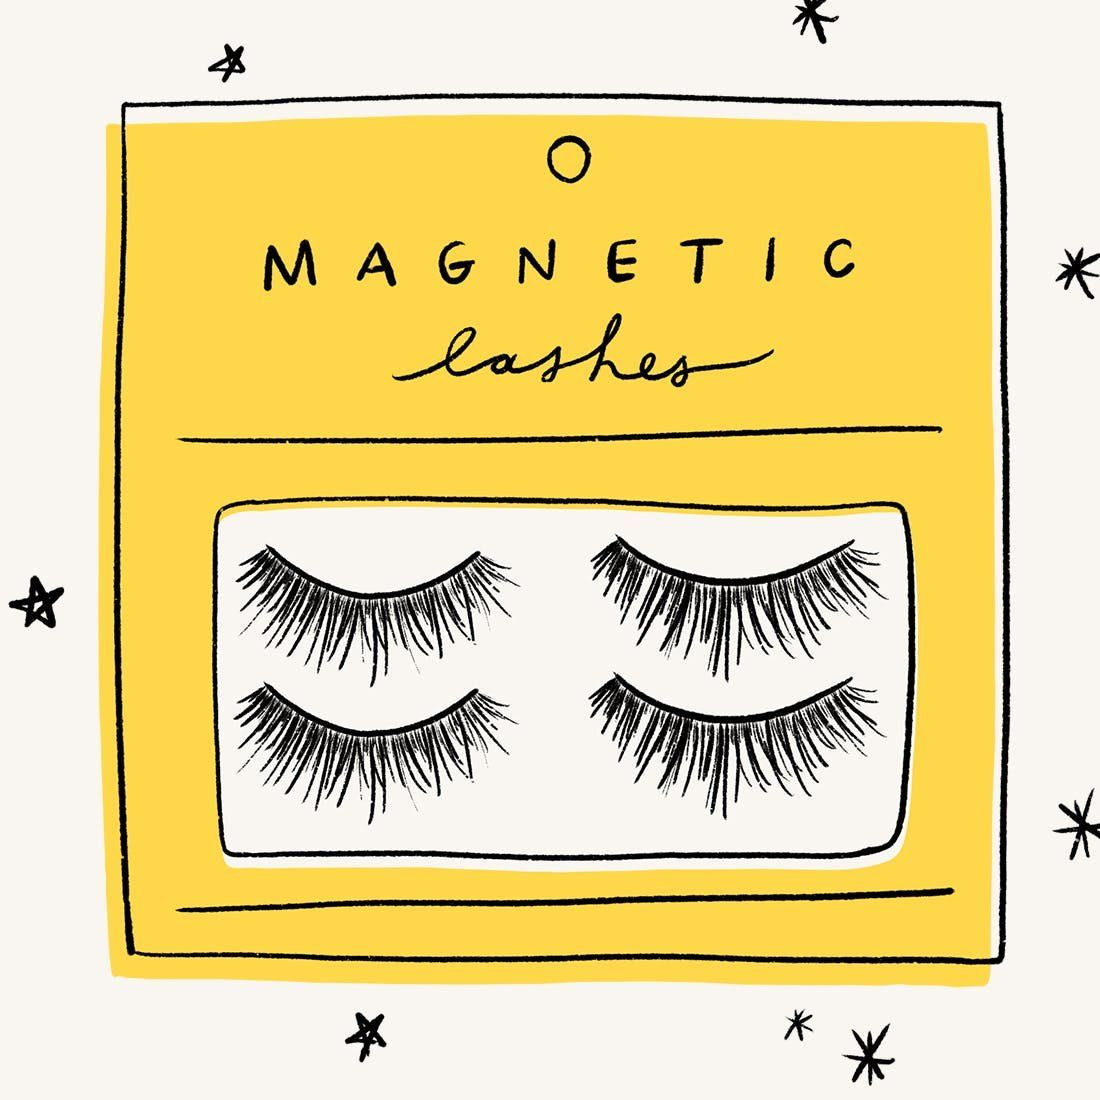 233189356f3 Magnetic lashes are *total* life savers. | Beauty in 2019 | Pinterest |  Lashes, Magnetic lashes and Eyelashes